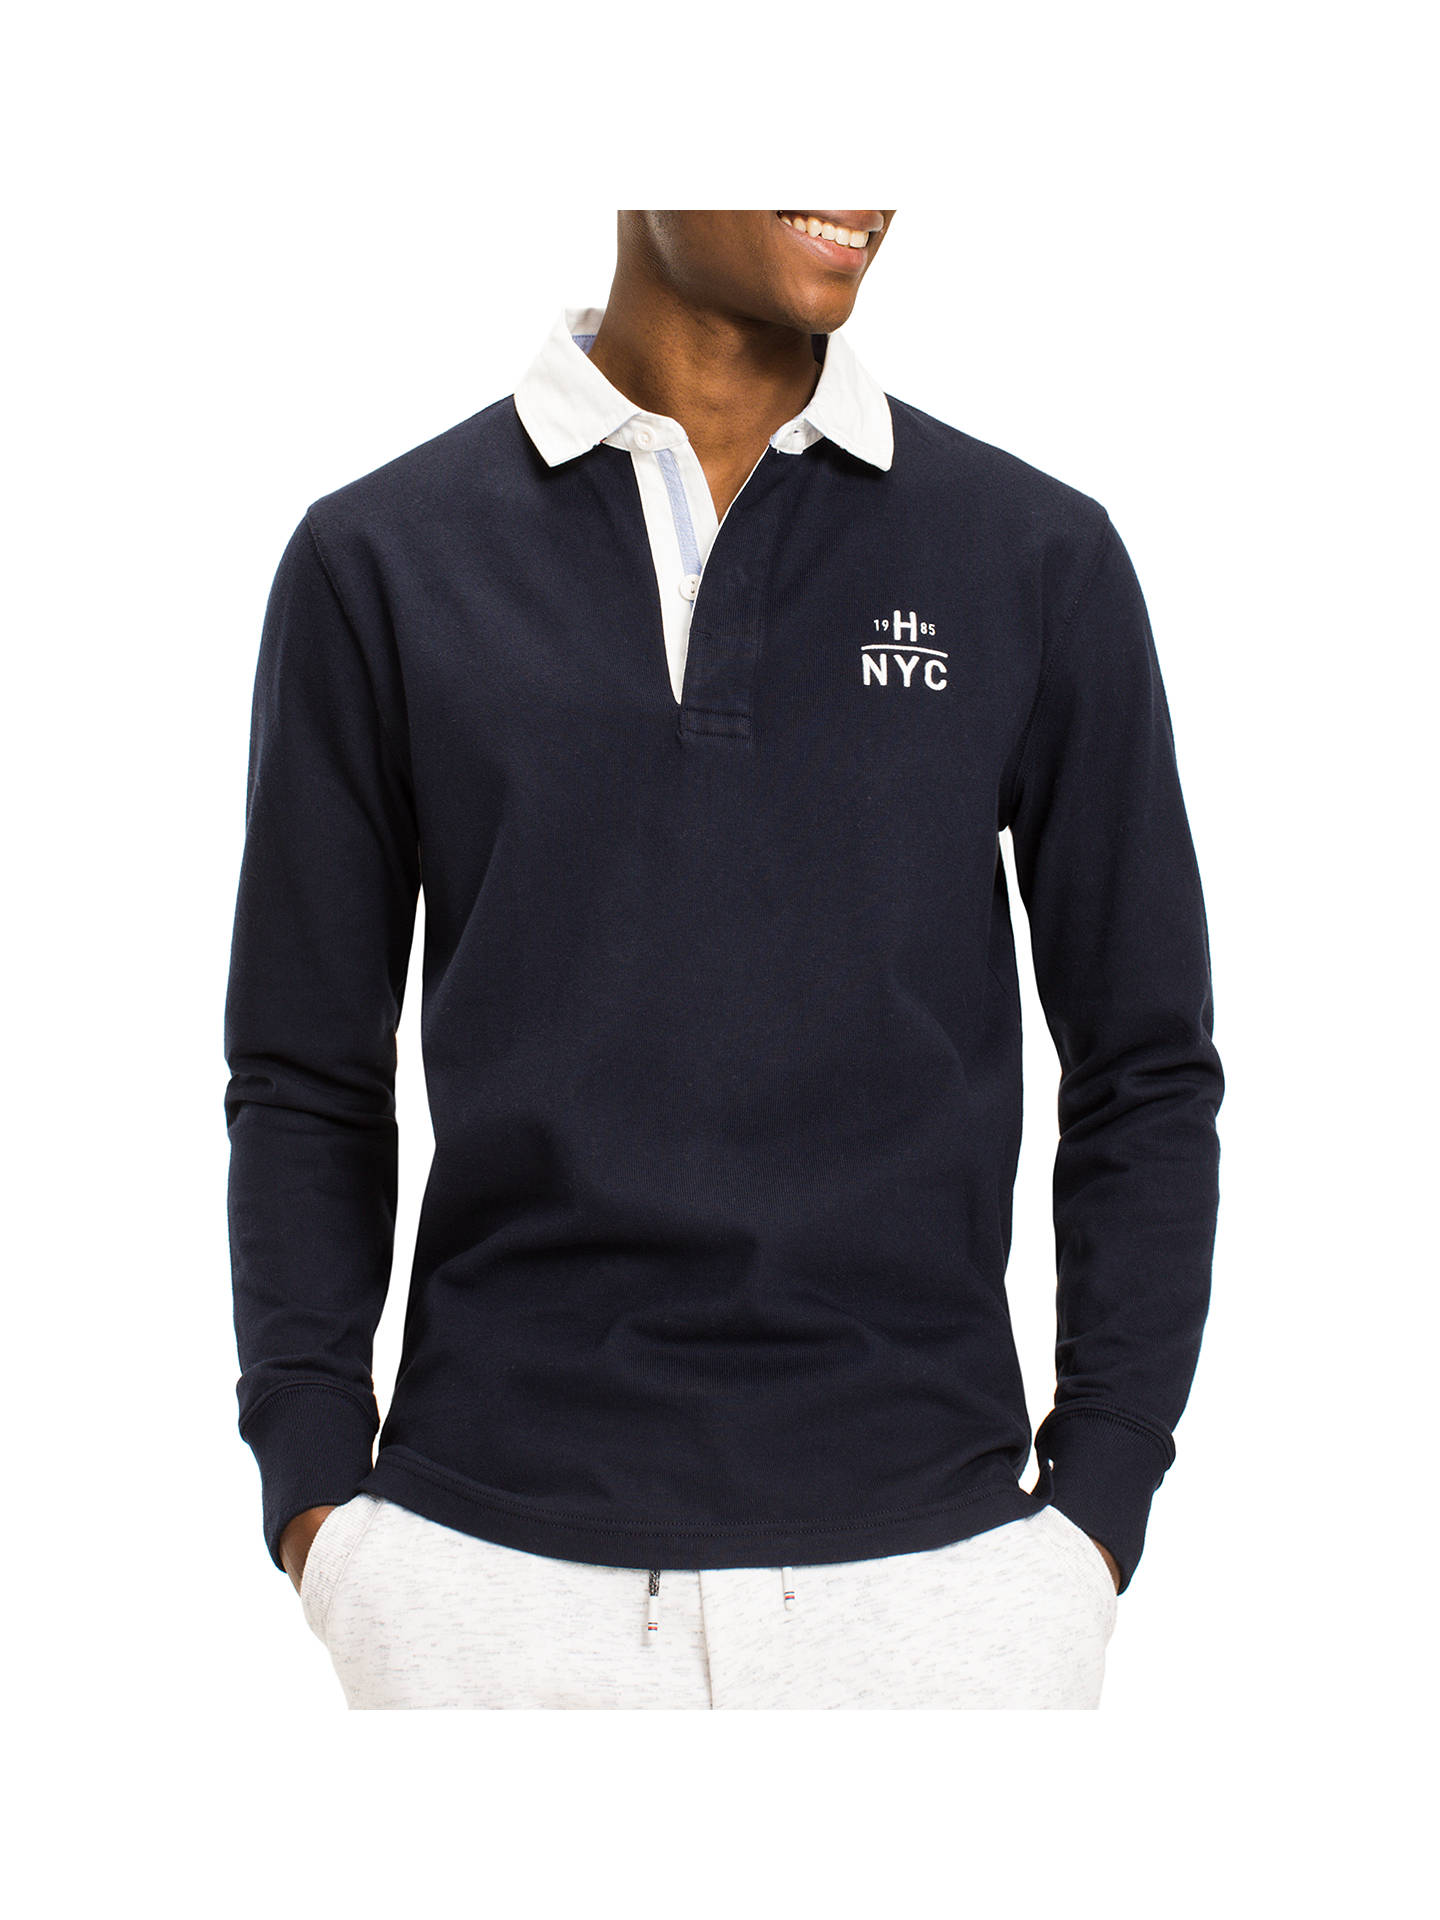 tommy hilfiger ryan long sleeve rugby top, navy at john lewis \u0026 partners